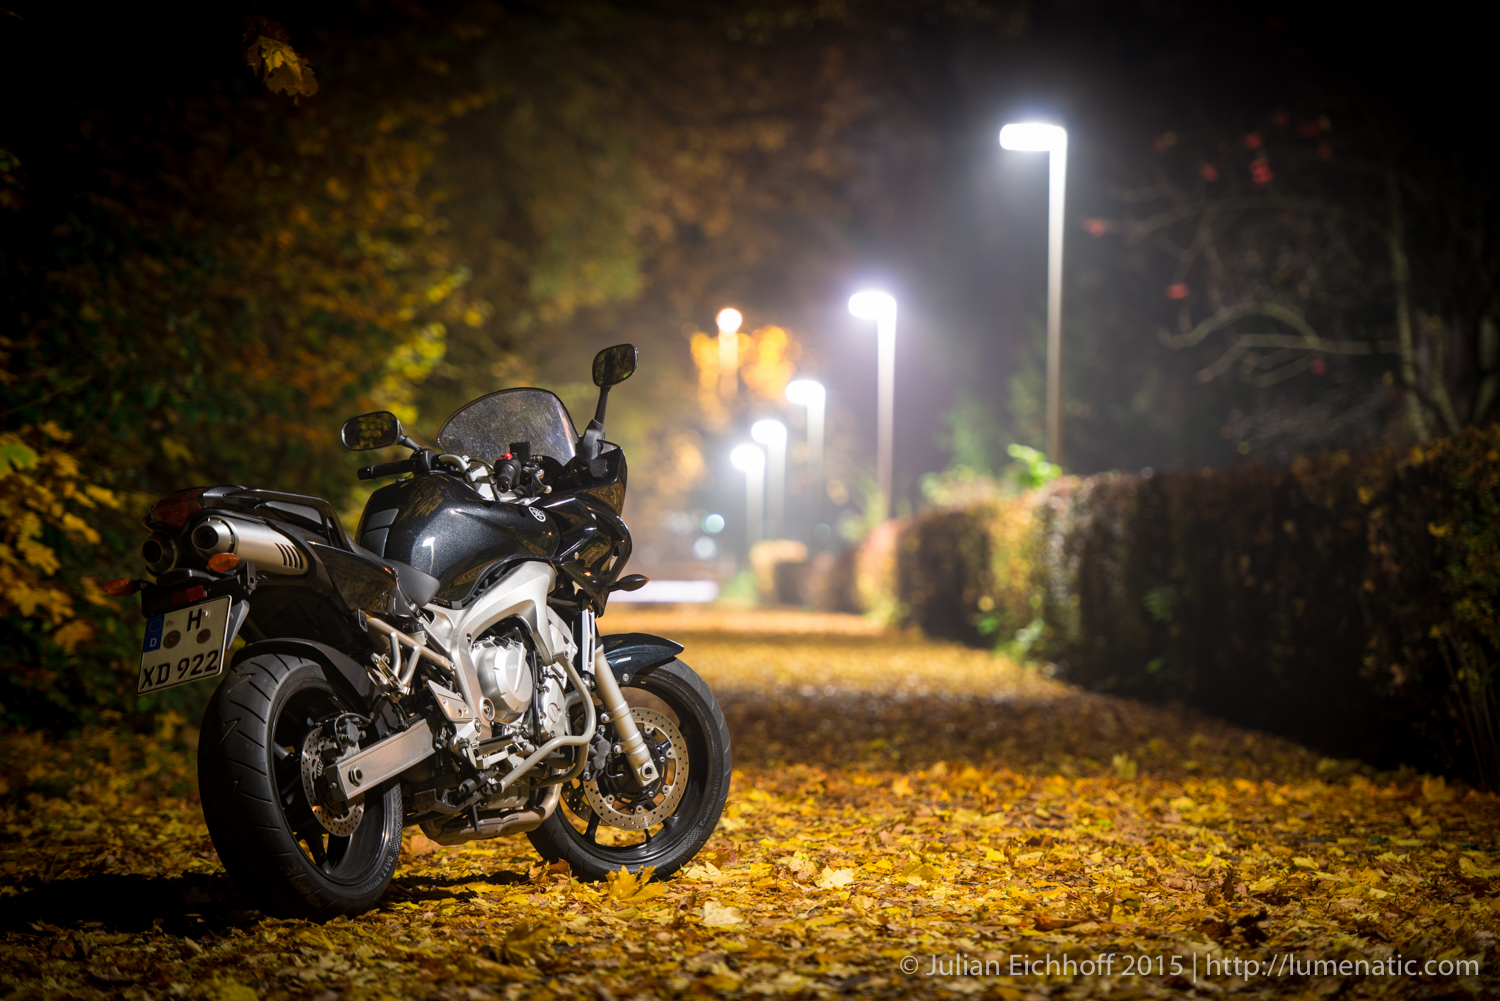 Bikes in autumn foliage, part 2: Nighttime